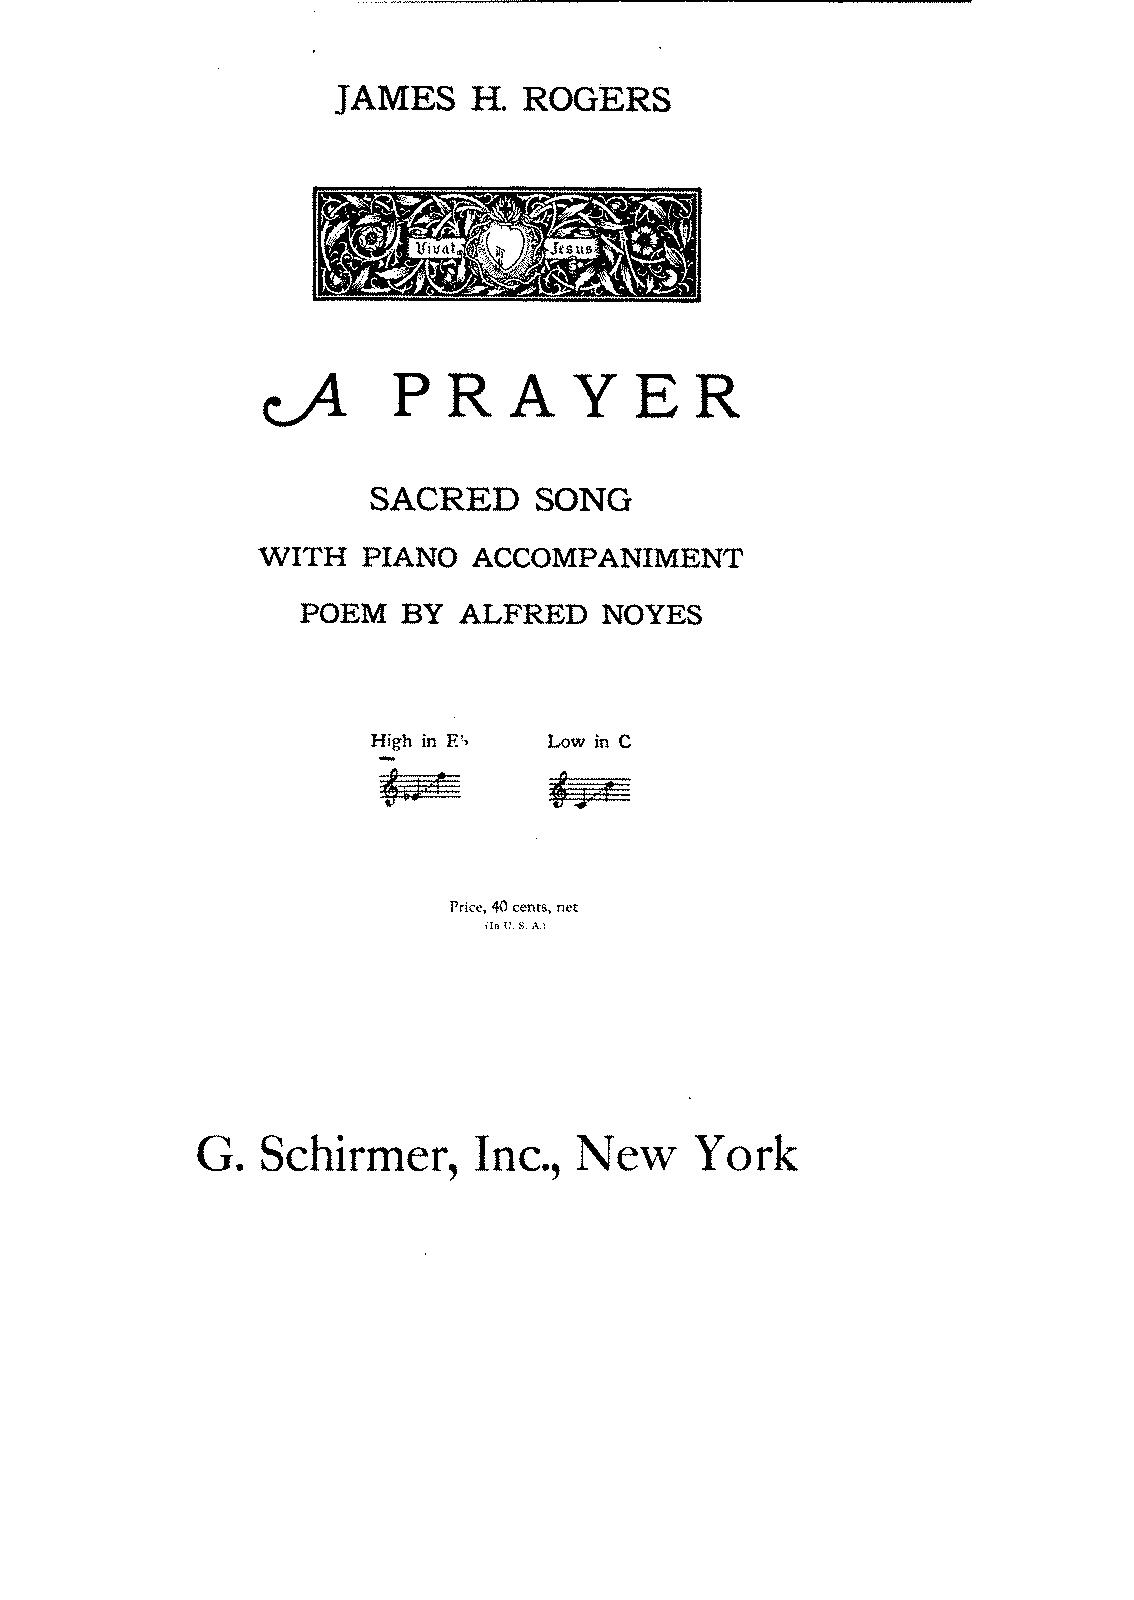 SIBLEY1802.16237.6db7-39087011265263prayer.pdf